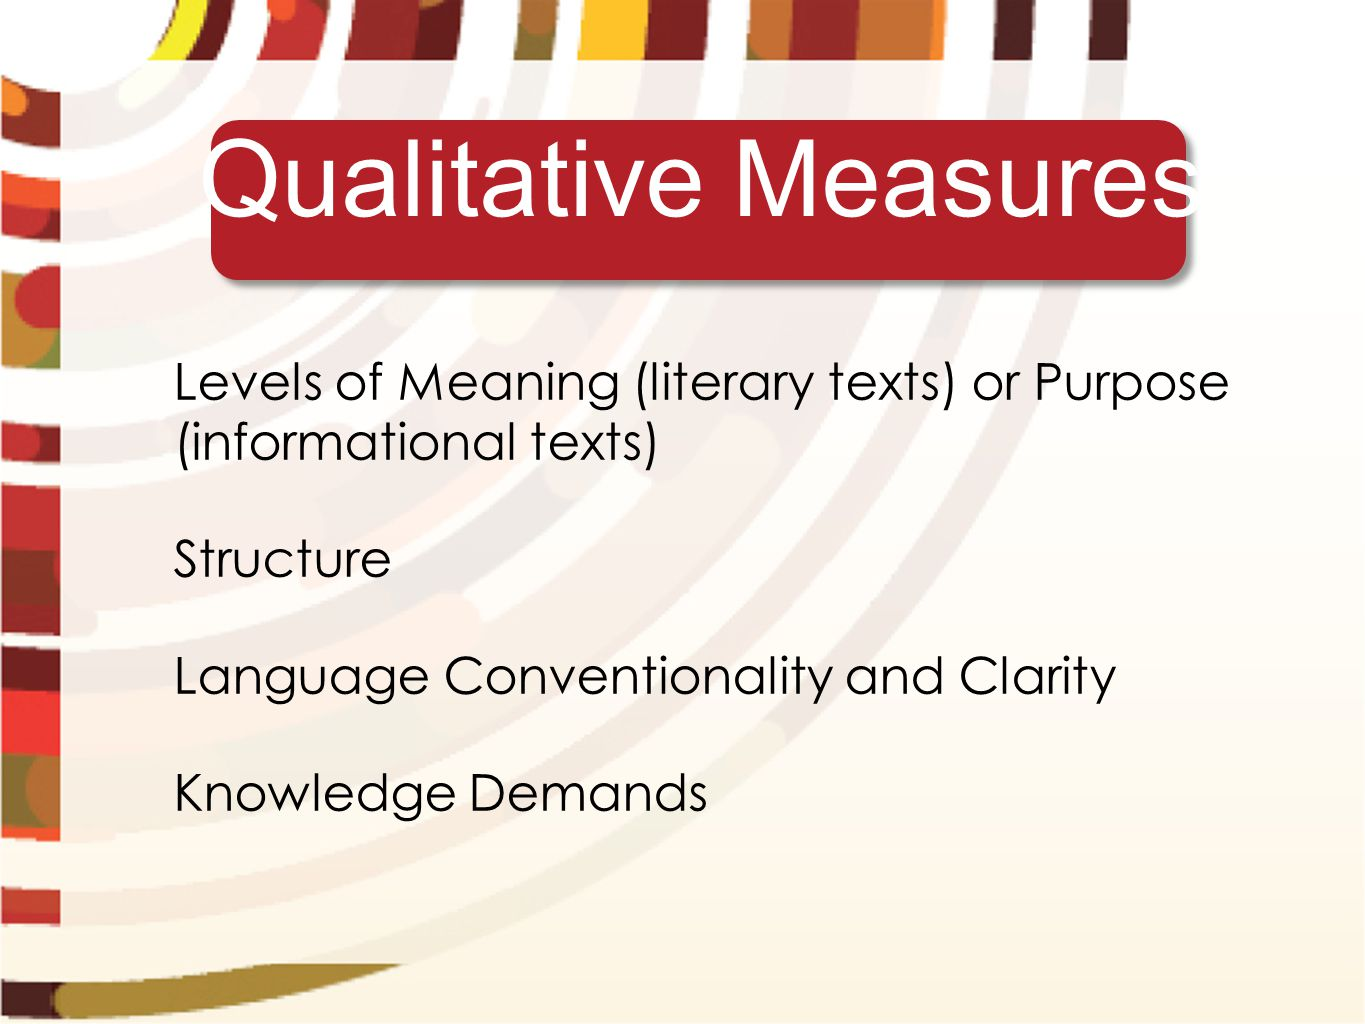 Qualitative Measures Levels of Meaning (literary texts) or Purpose (informational texts) Structure Language Conventionality and Clarity Knowledge Demands